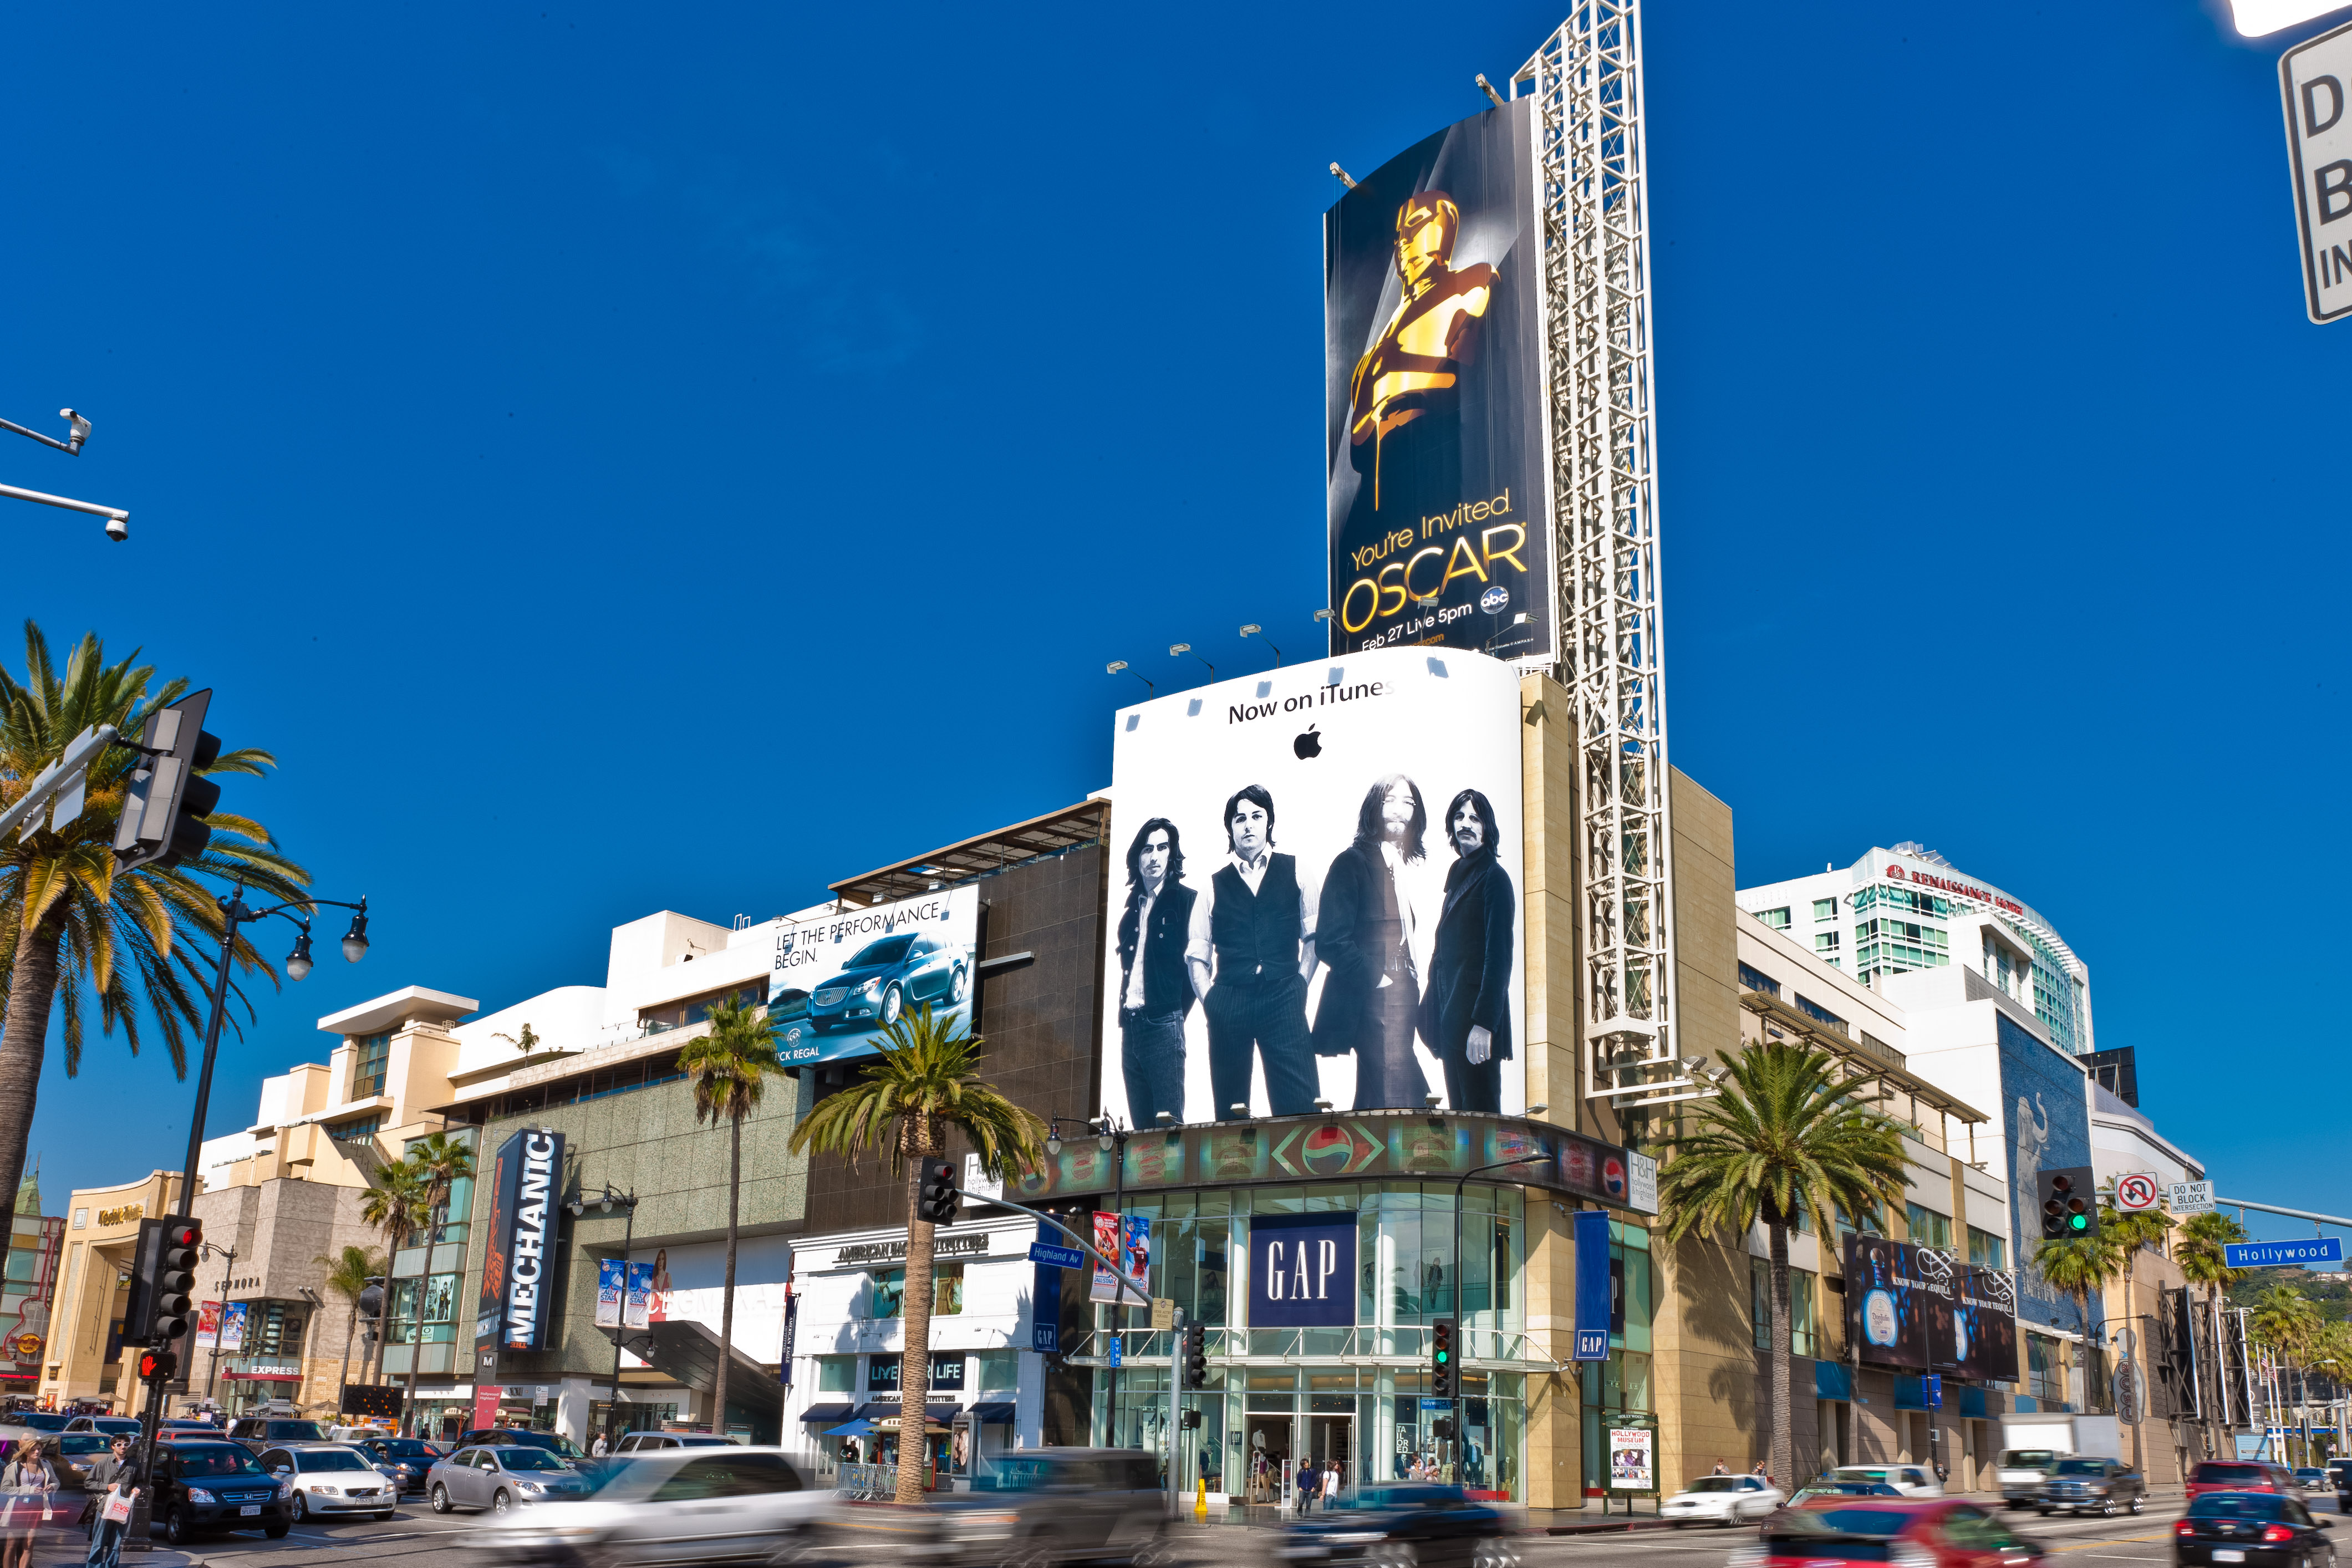 The Hollywood & Highland complex in California.